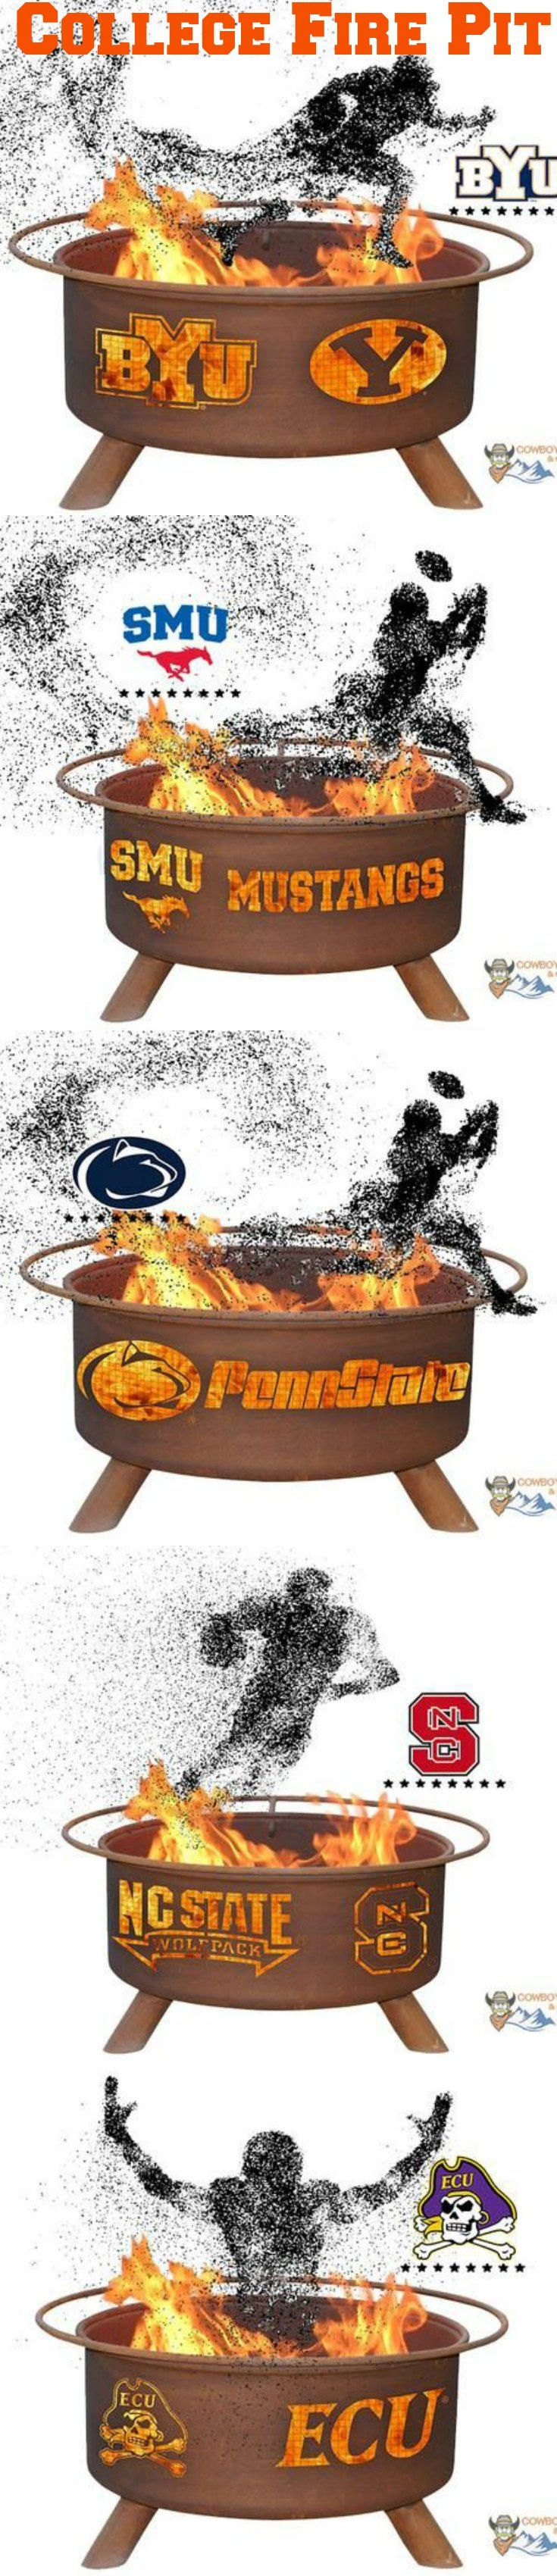 Fire Pit Tailgate Show Your Pride and Entertain your Friends with the Wake Forest University Fire Pit! – College Fire Pit